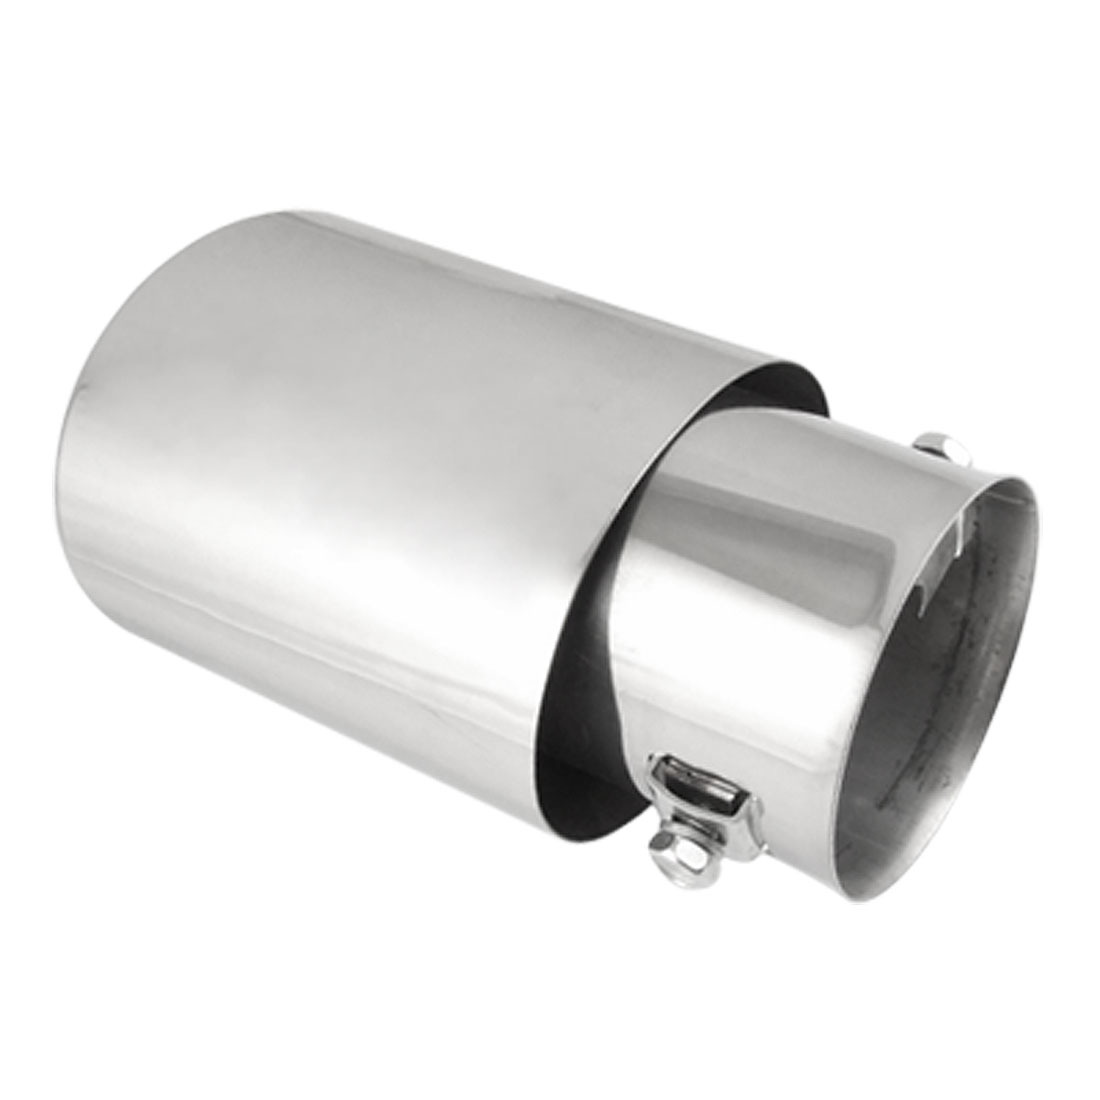 "2.4"" Inlet Dia Oval Angle Cut Metal Muffler Tail Tip for Car"